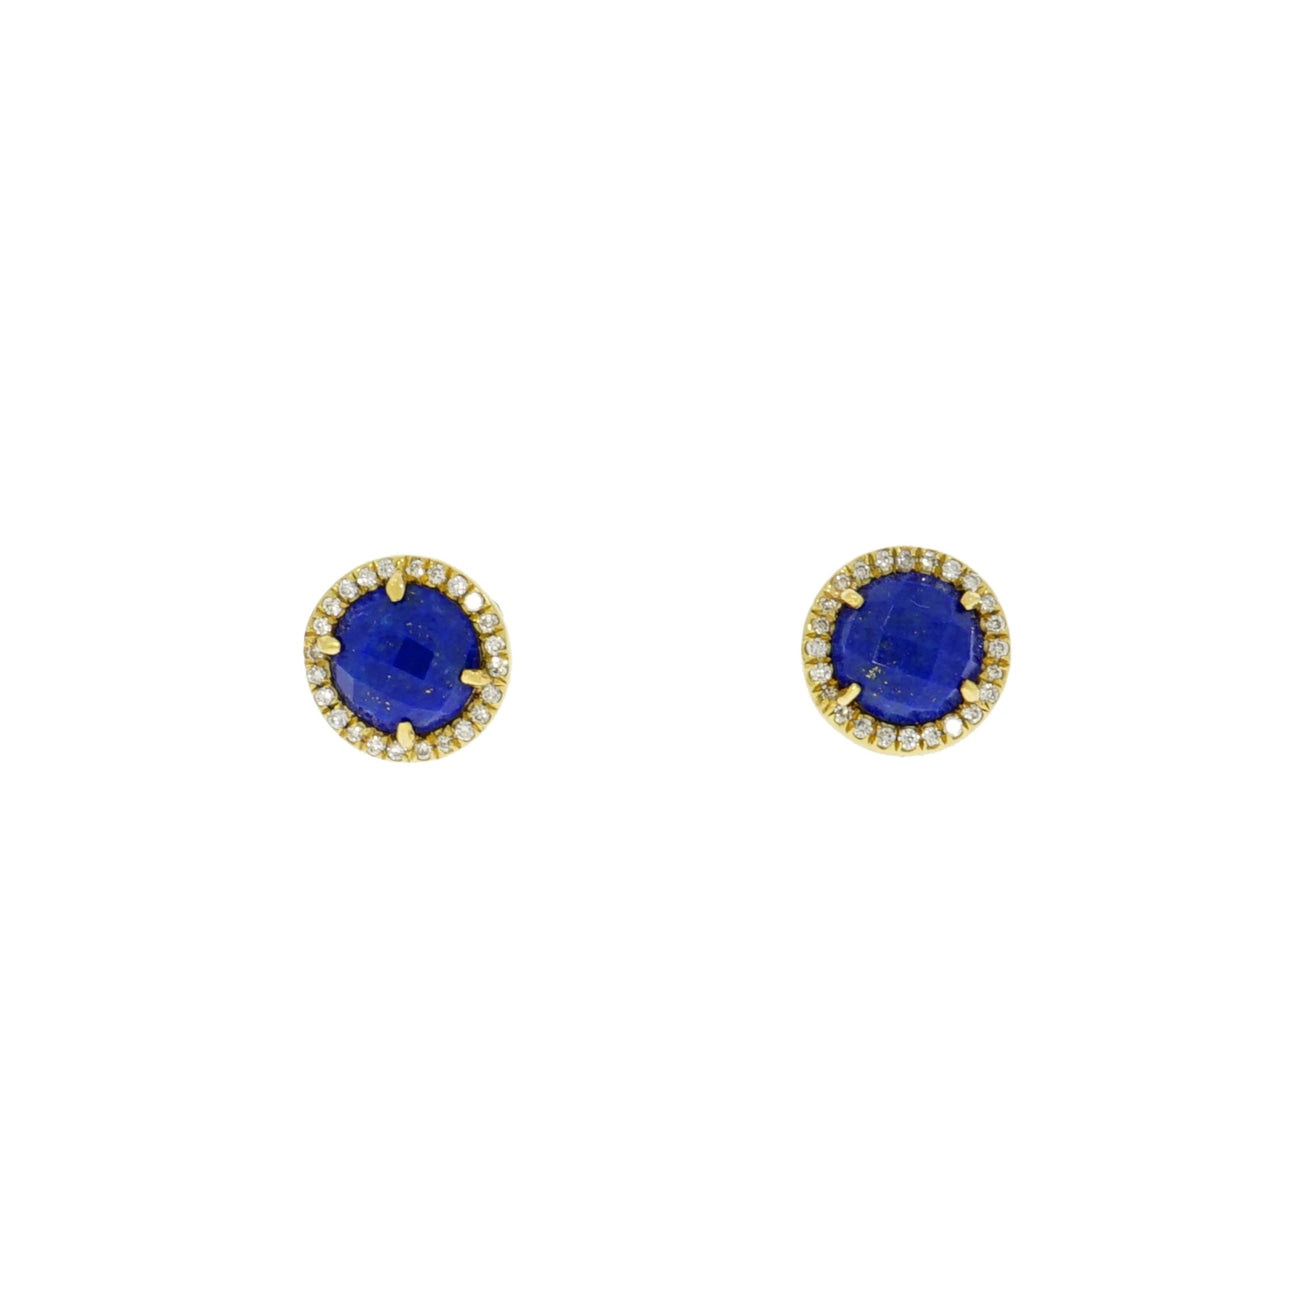 Lauren K Jewelry - Lapis Lazuli & Diamond Stud Earrings | Manfredi Jewels